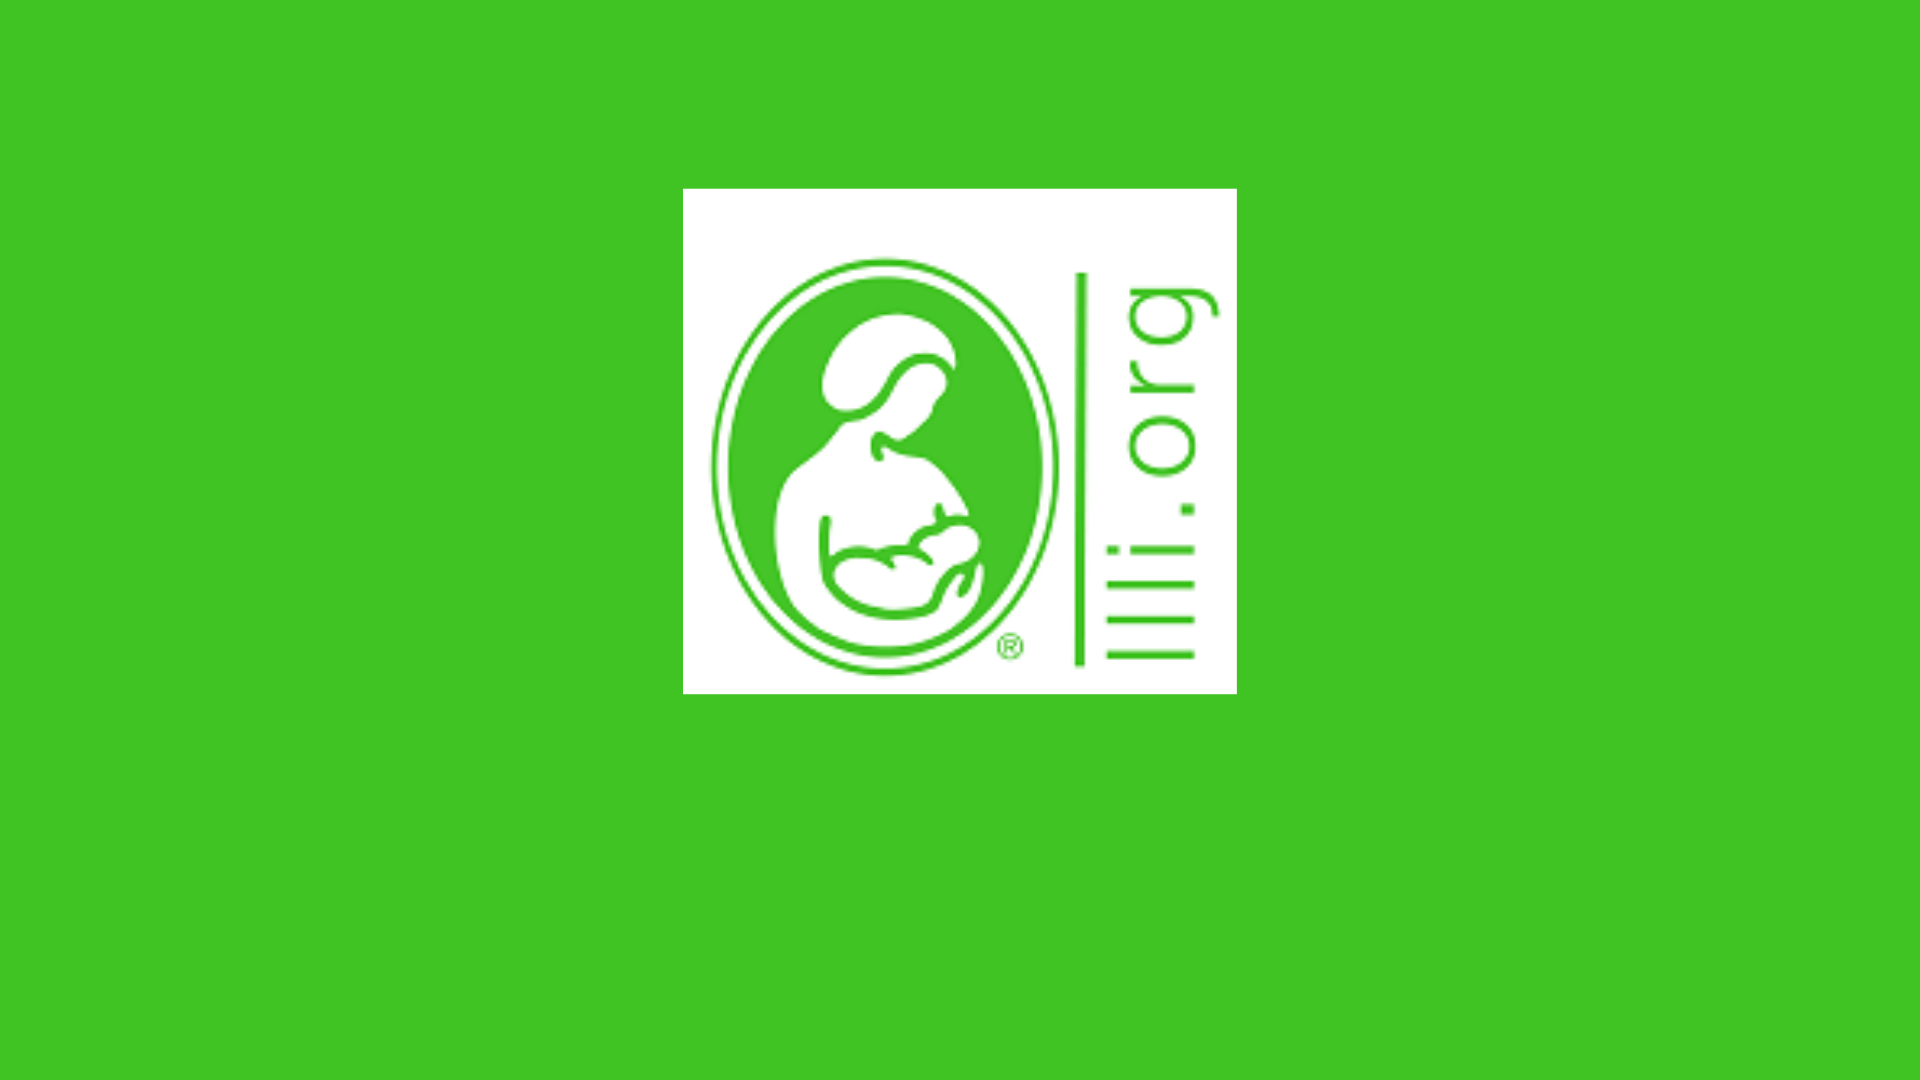 Green background with LLLI logo in white in the centre